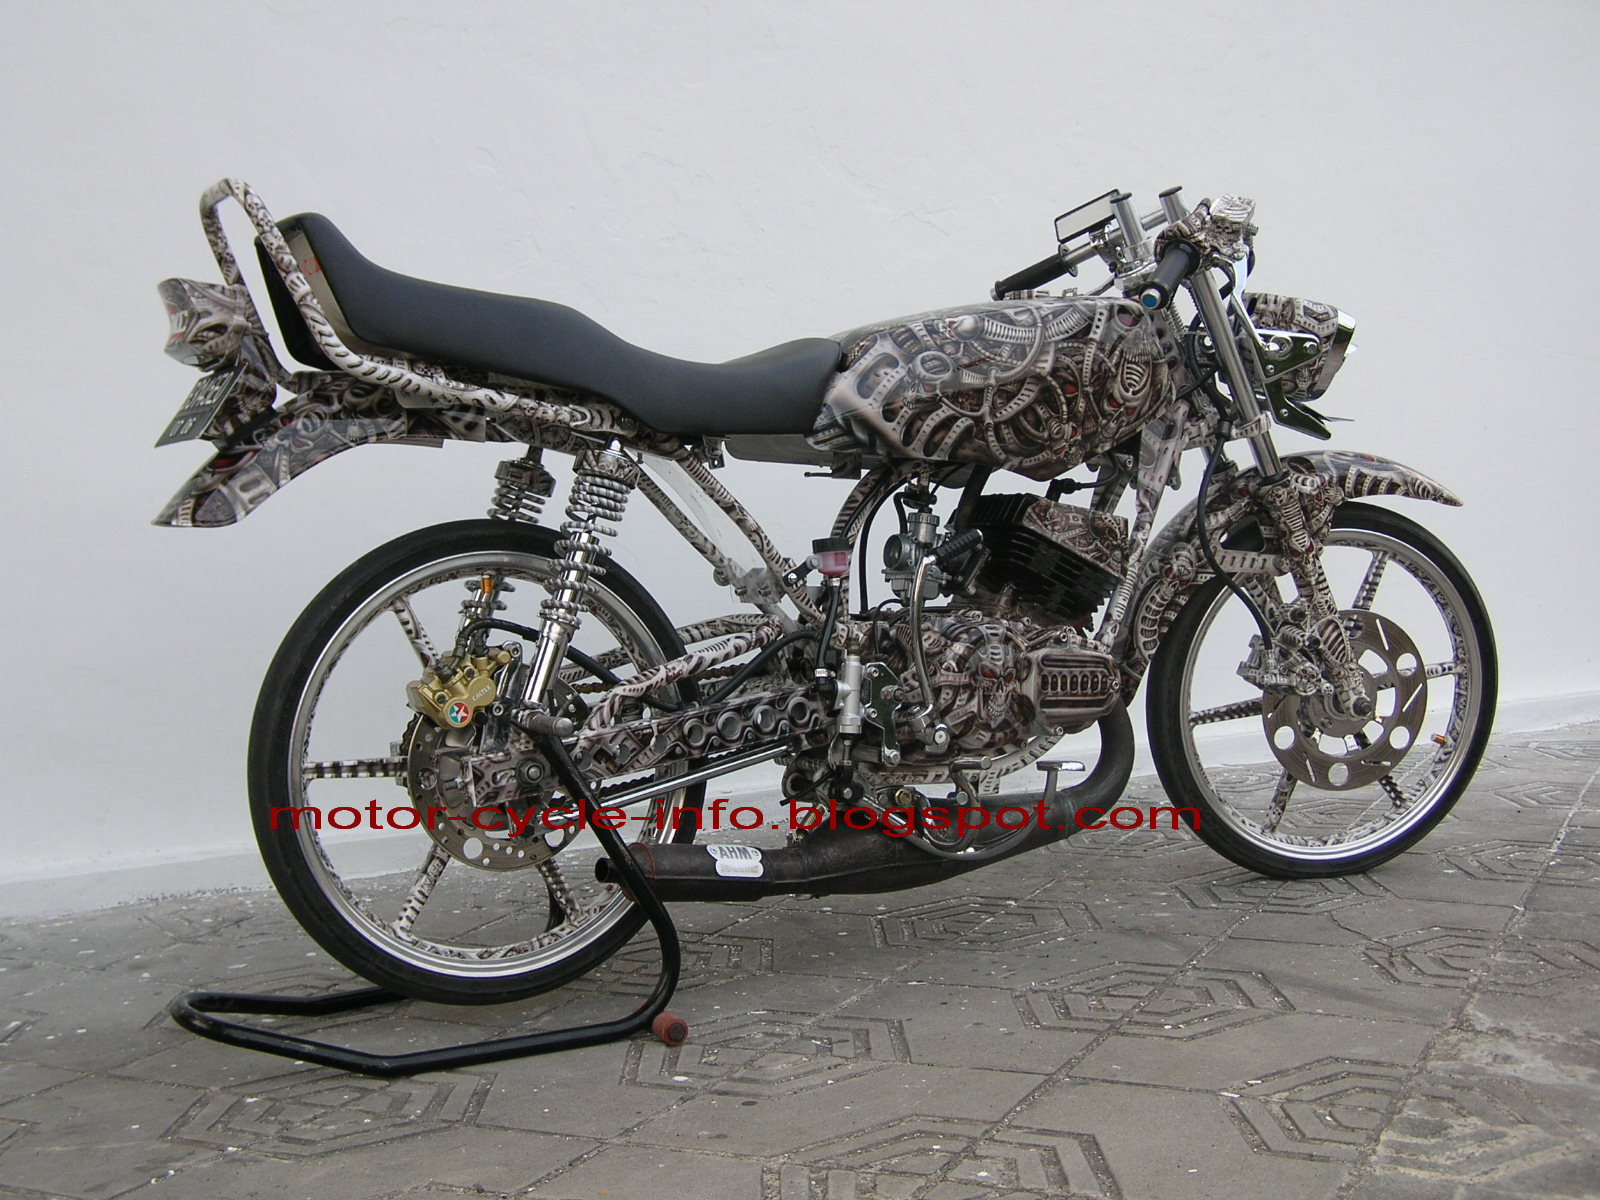 referensi modifikasi motor yamaha rx king